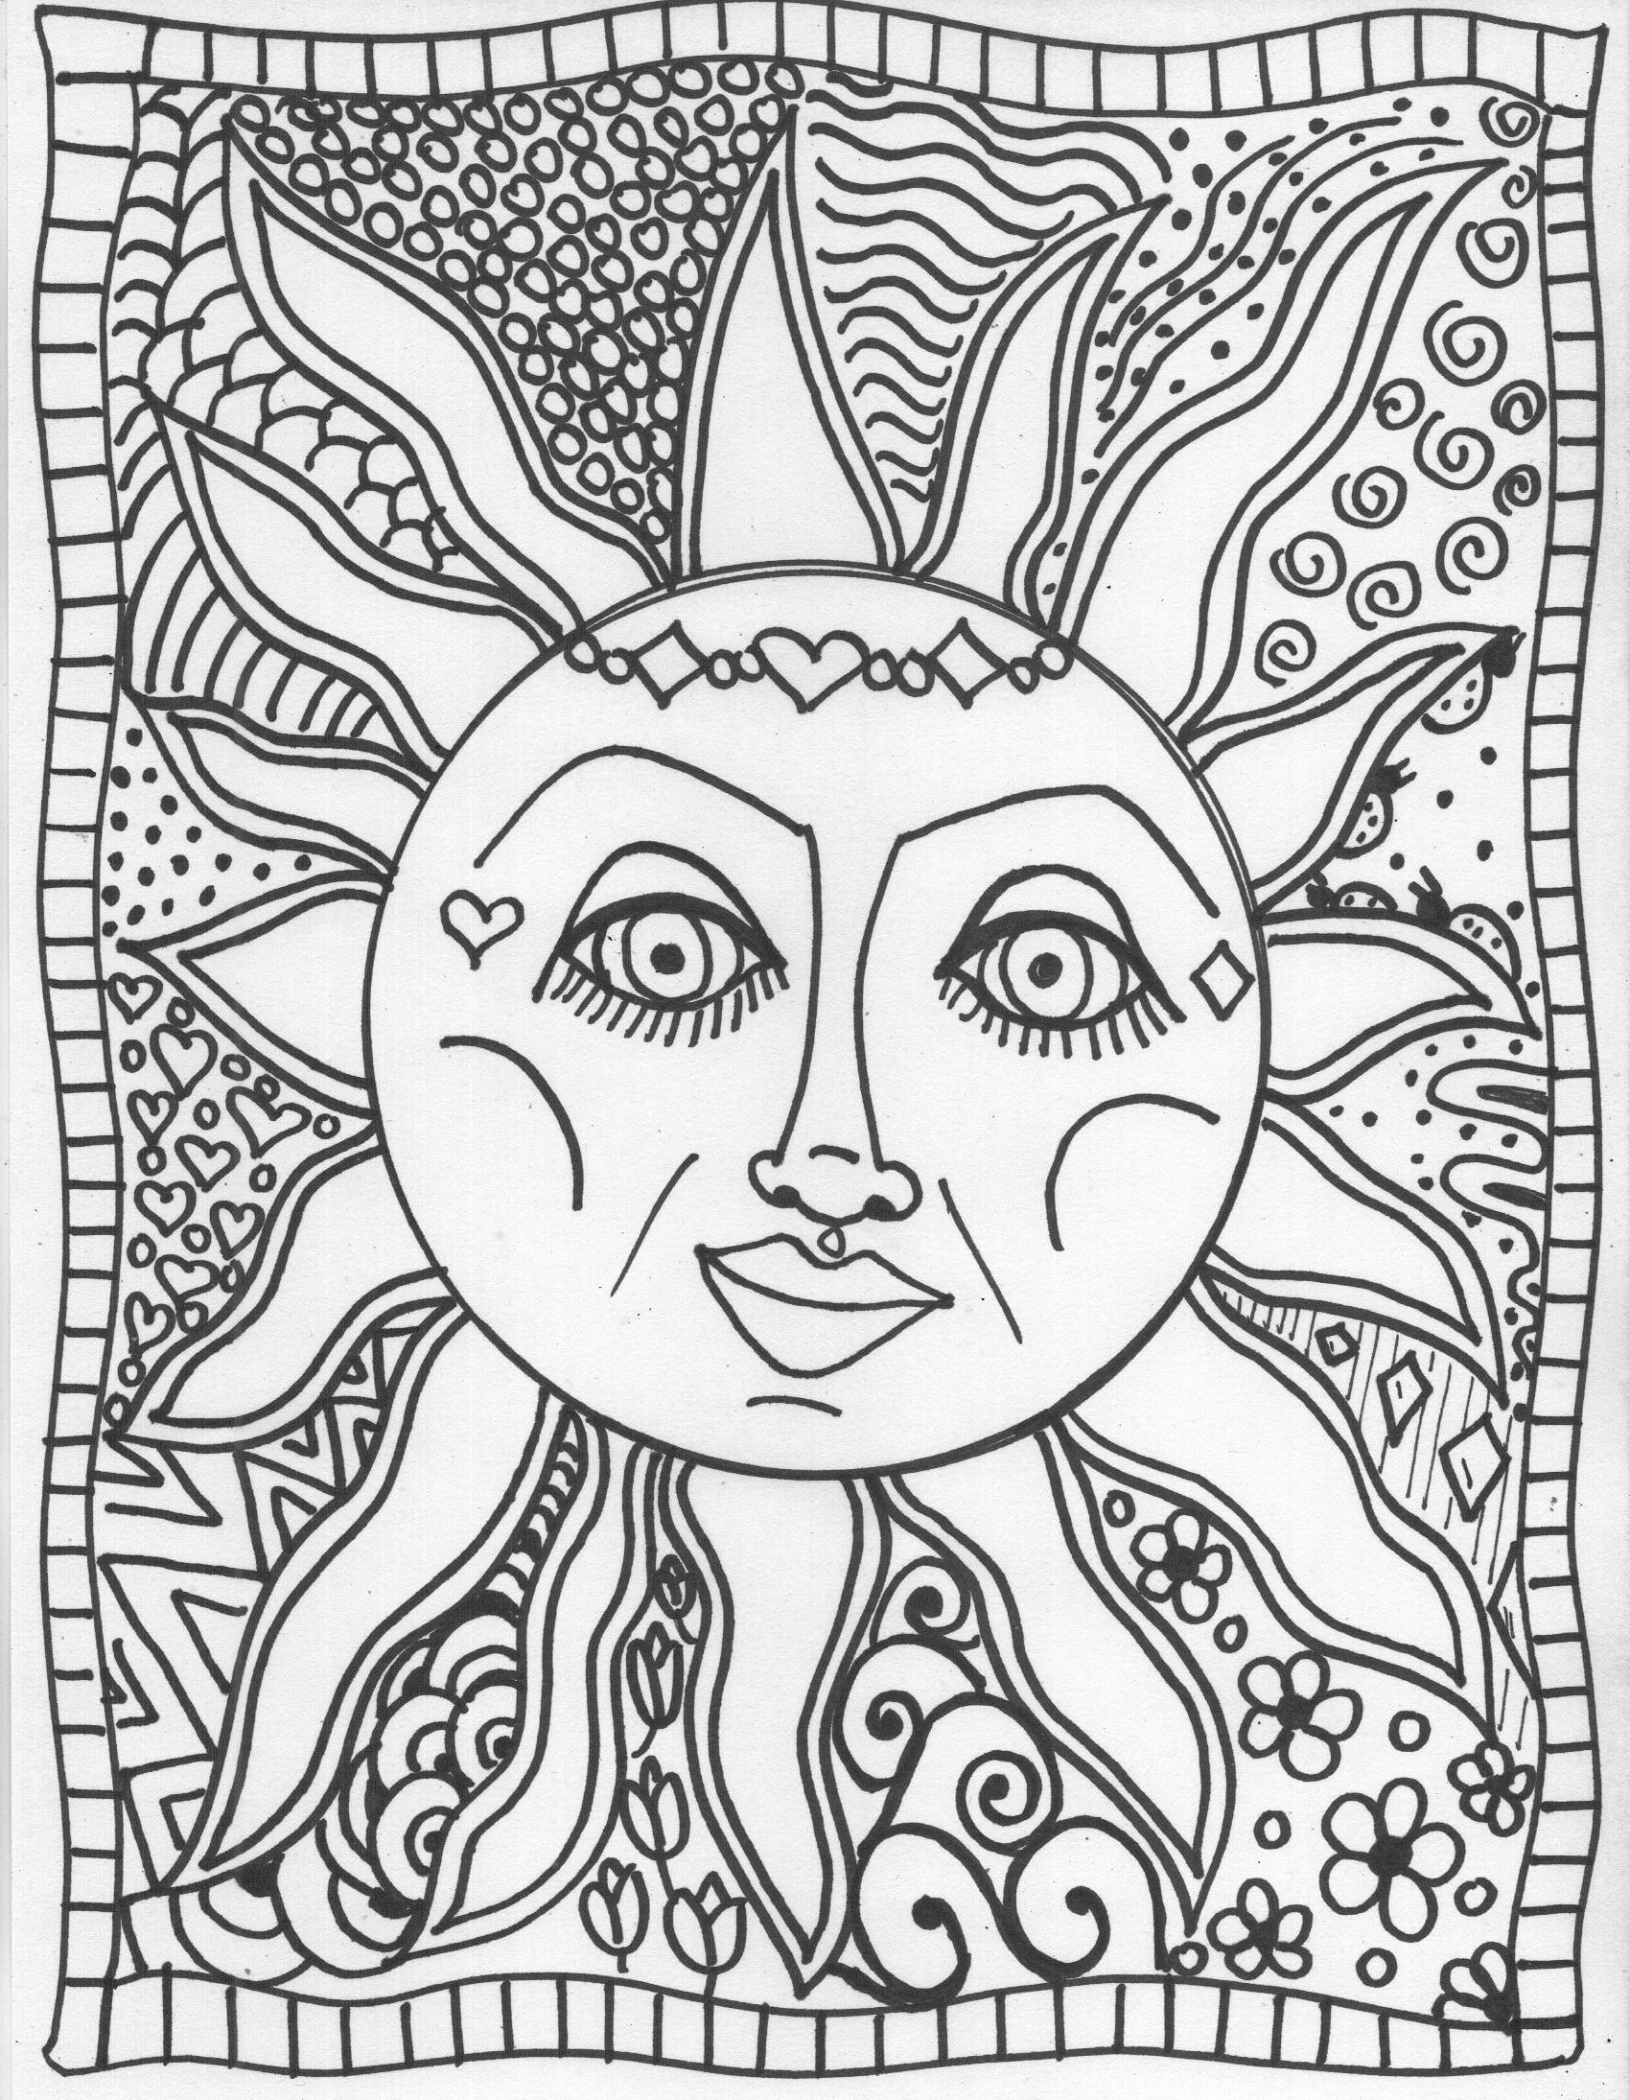 Sun Coloring Page For Adults